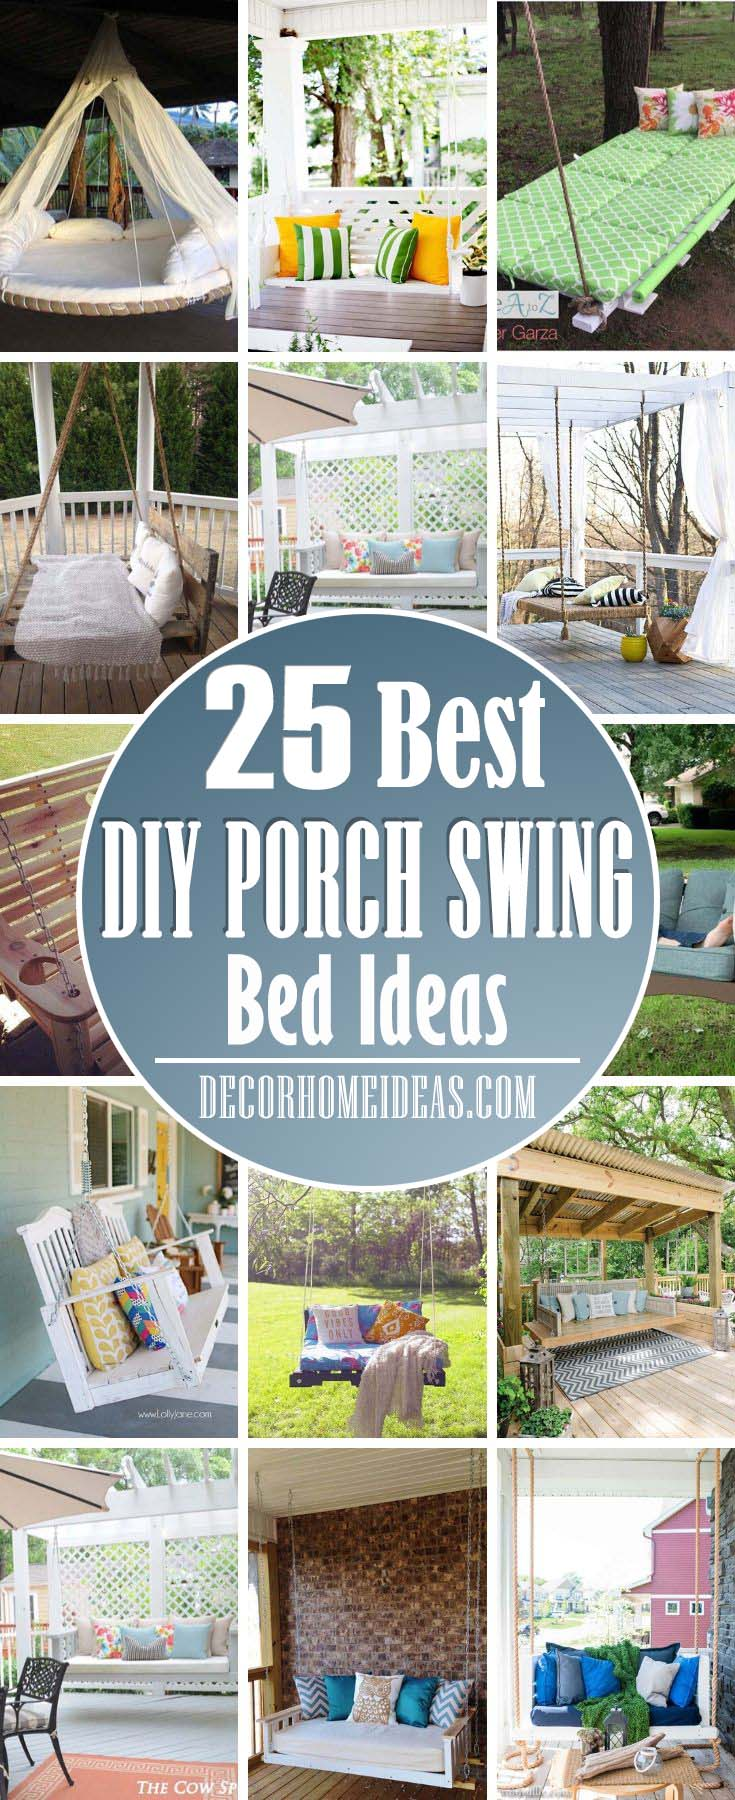 Best DIY Porch Swing Bed Ideas. These DIY porch swing bed ideas can help you to transform your outdoor space into a relaxing retreat where you can spend some more time. #porch #swing #bed #decorhomeideas